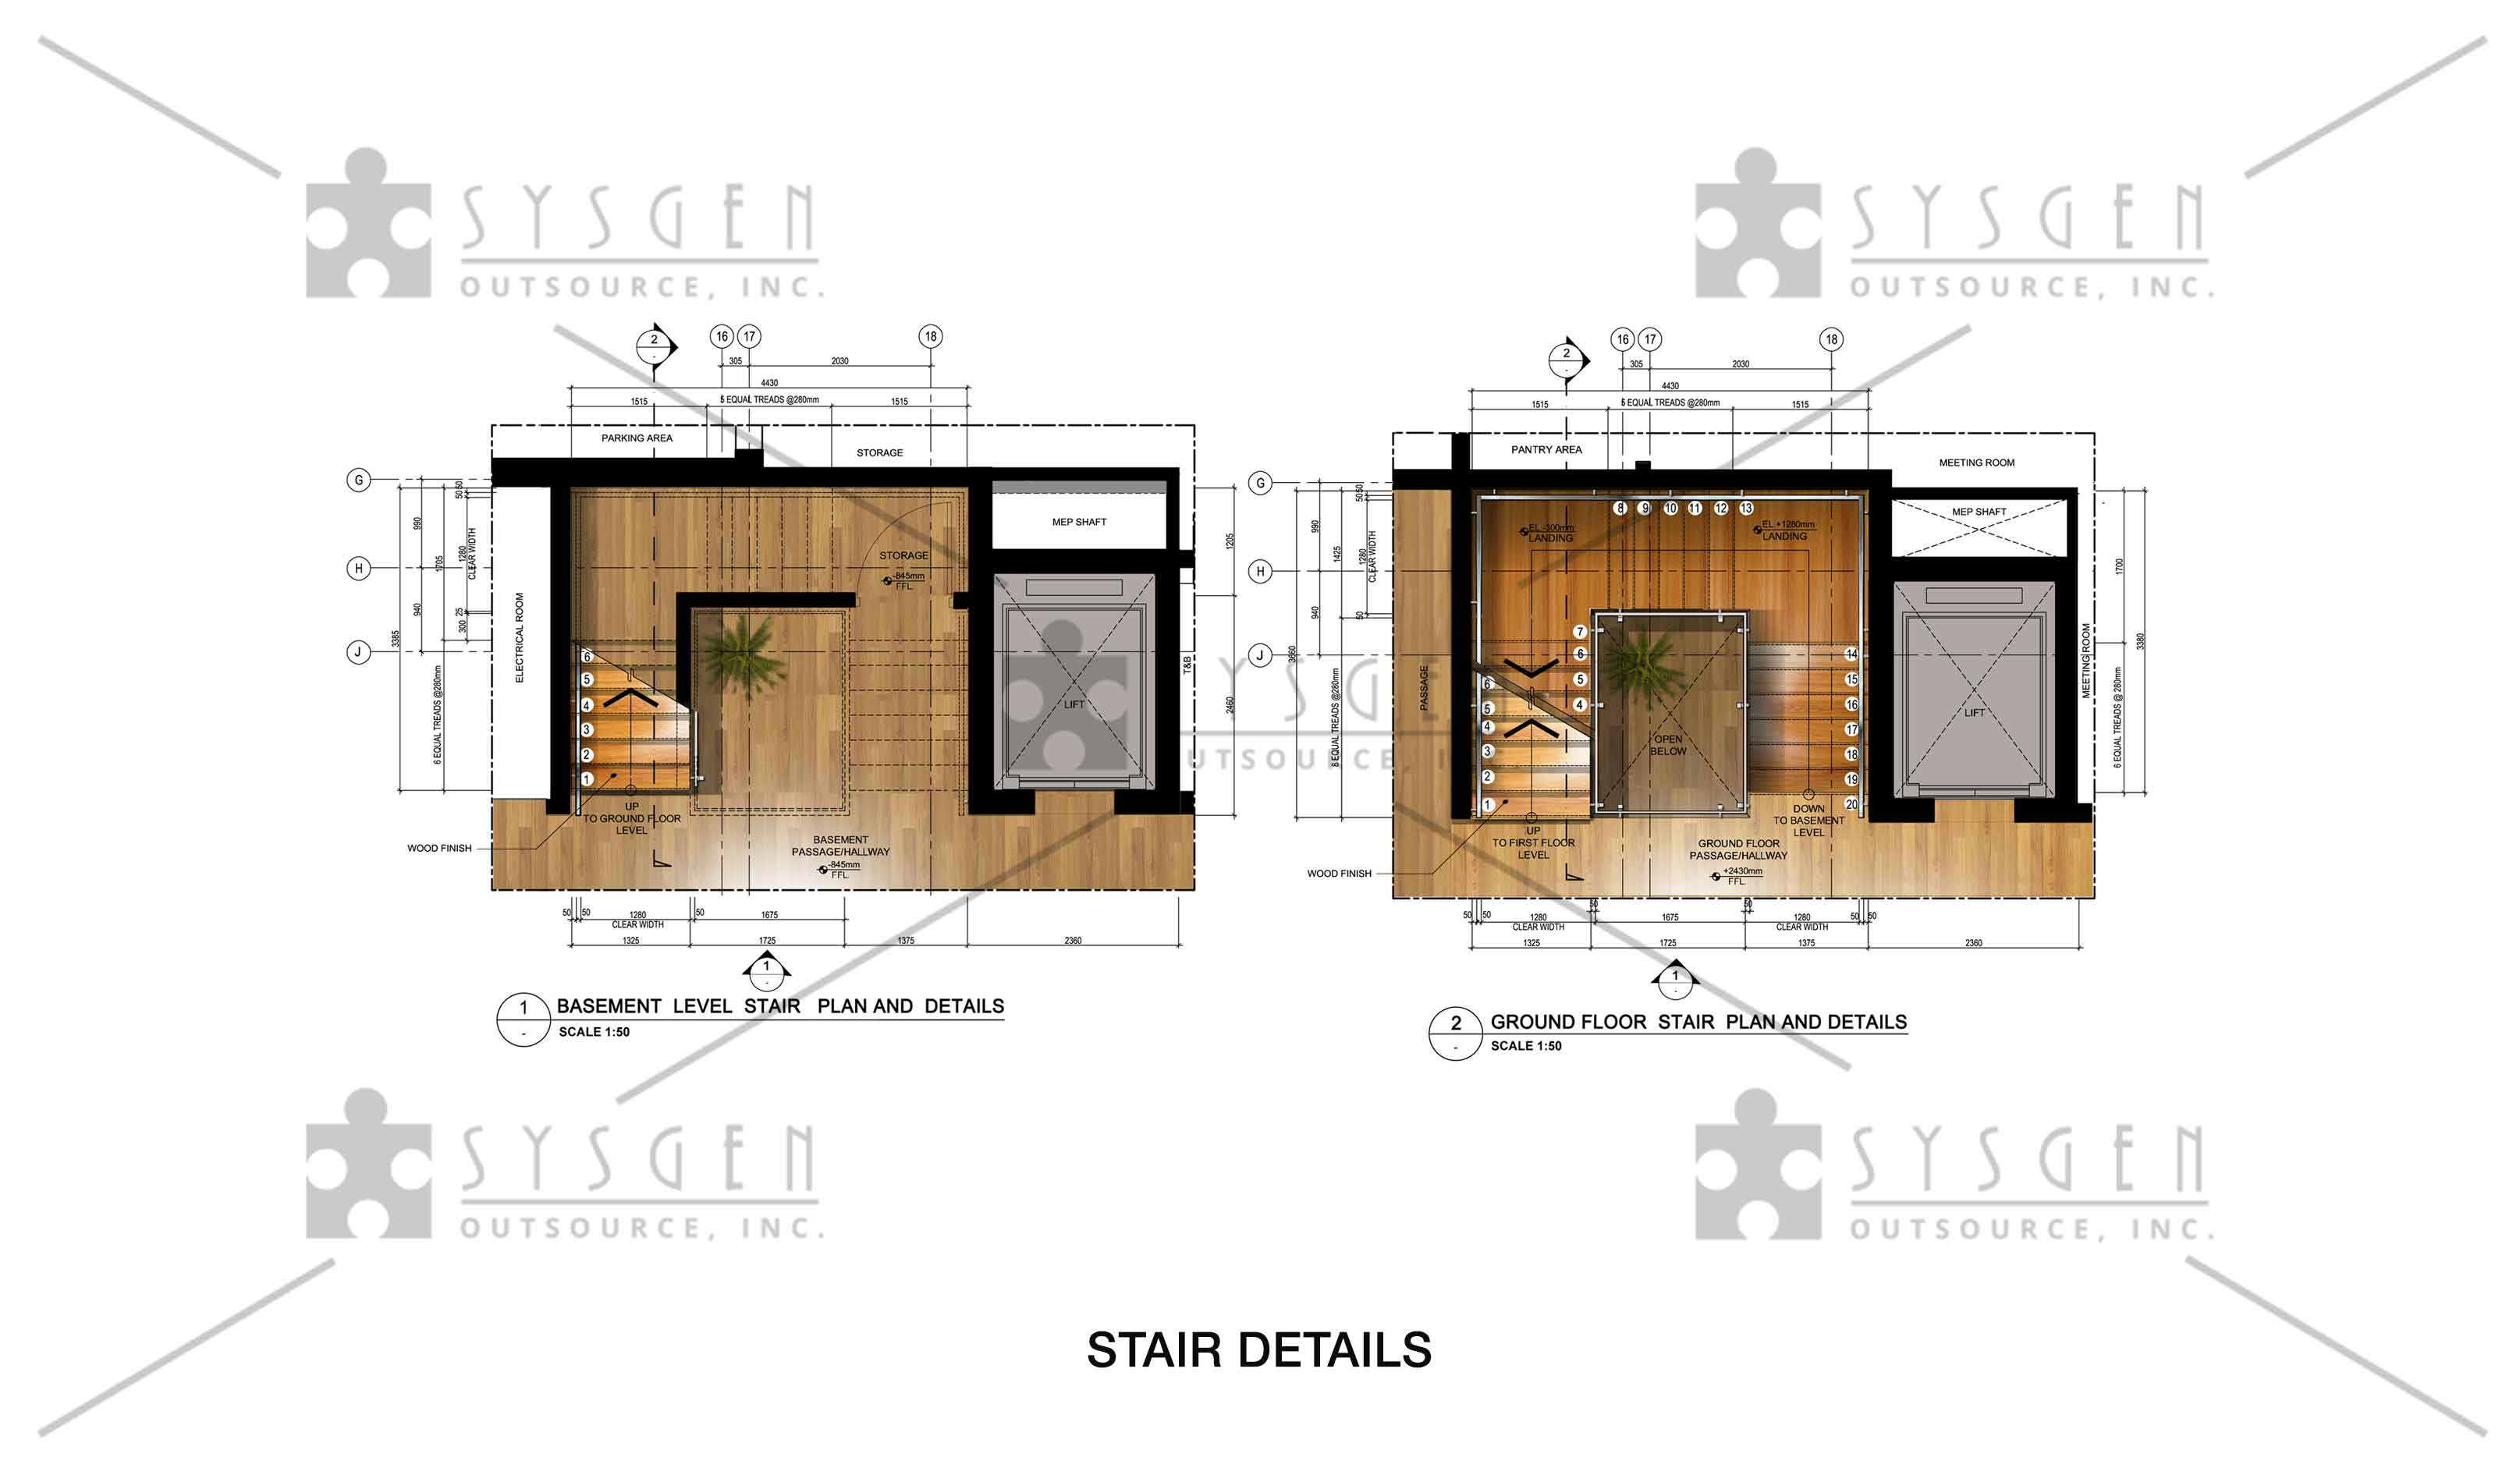 sysgen-outsource-cad-outsourcing-services-sketch-up-resi_villa-jj15